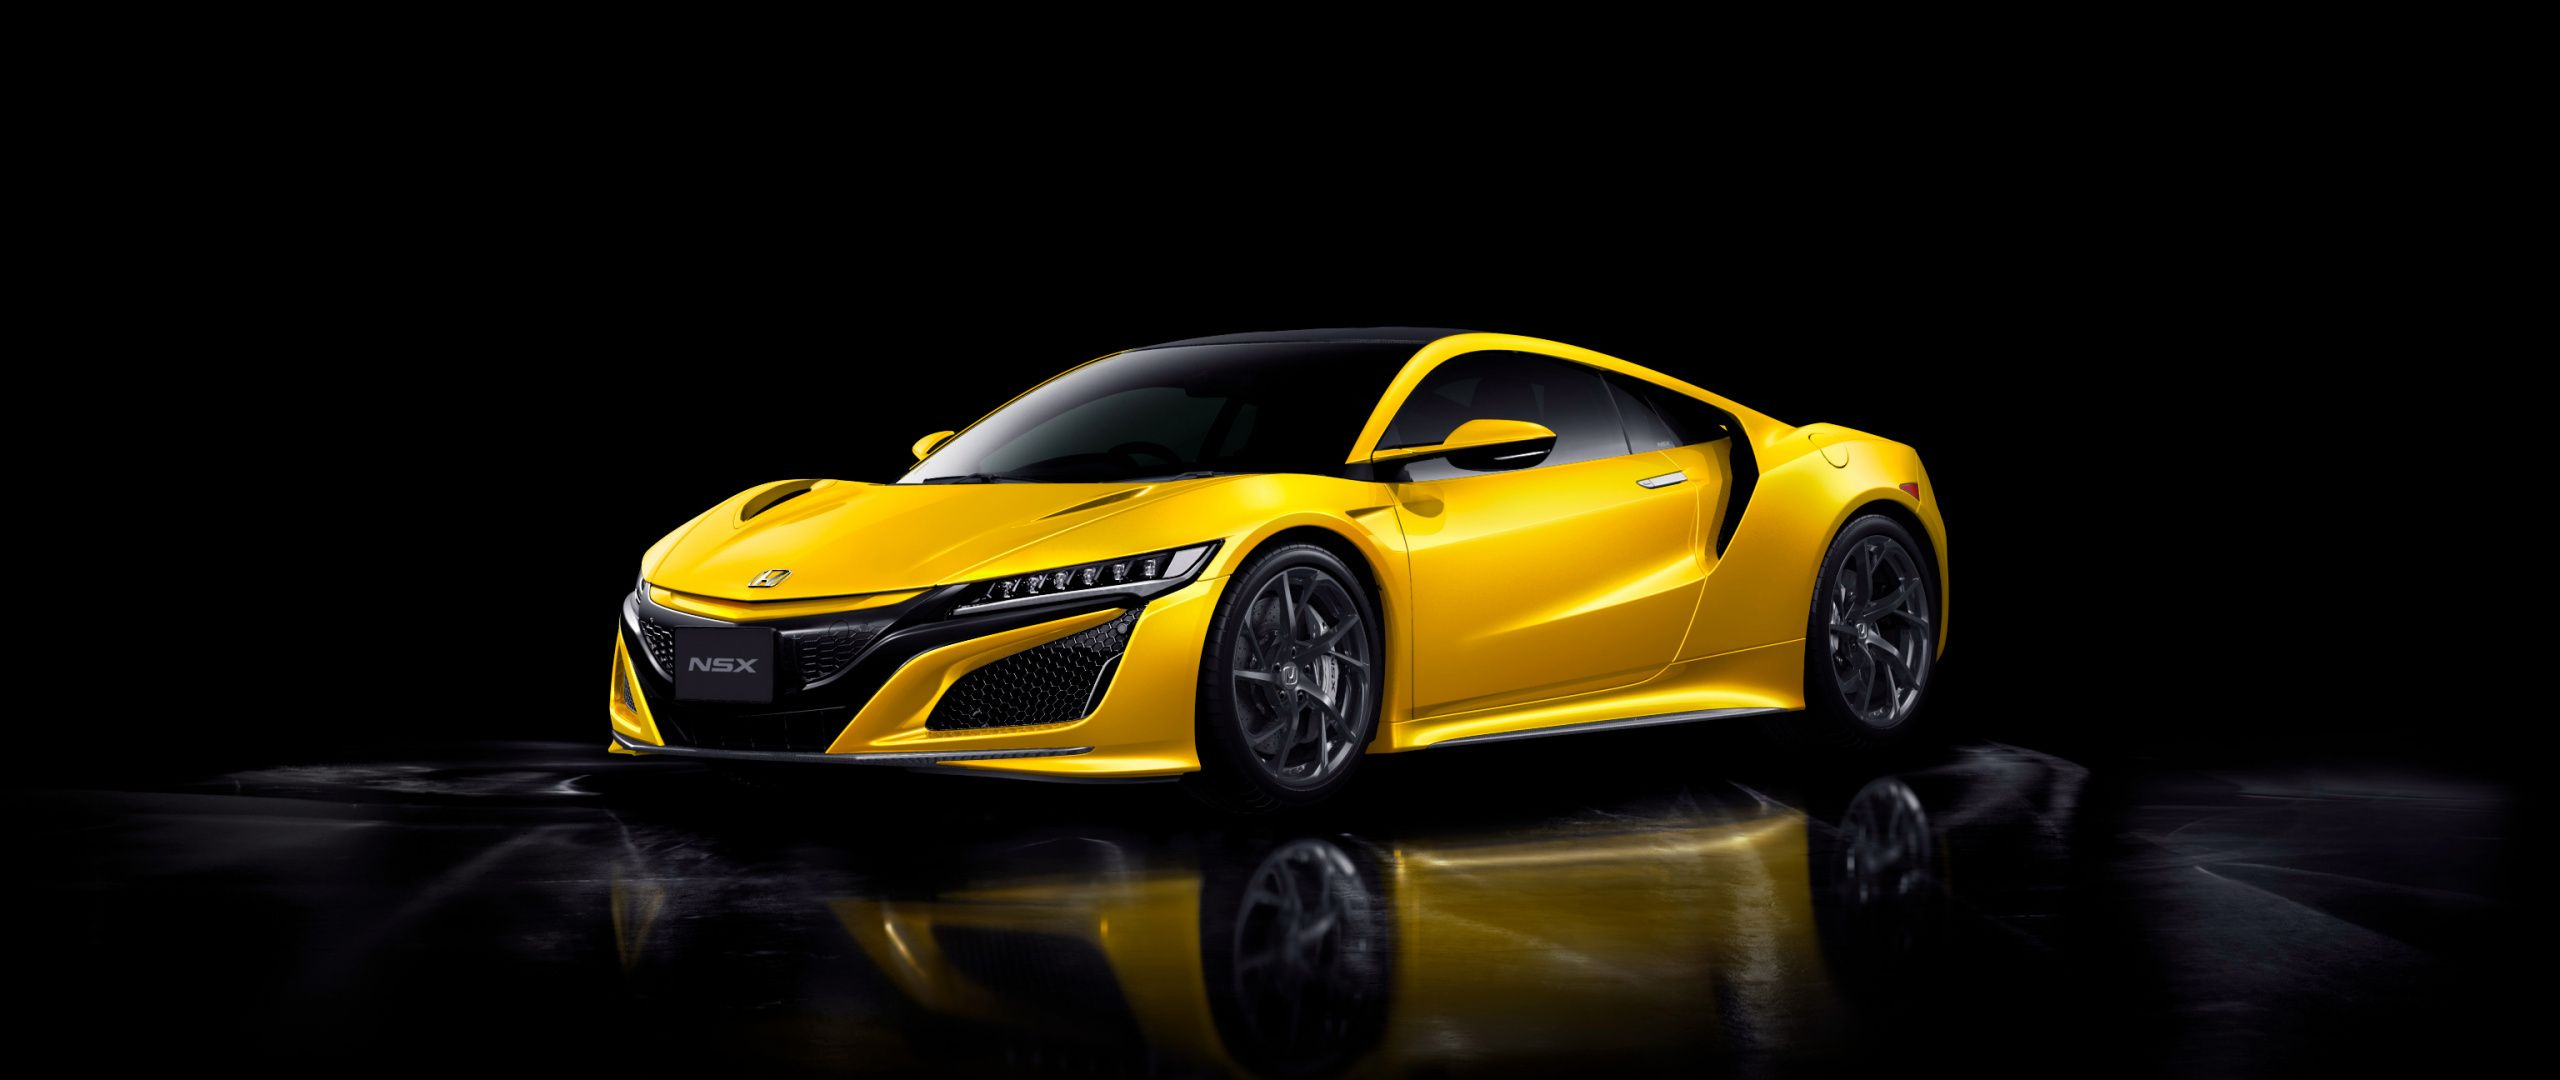 2560x1080 Car Honda Nsx Yellow Wallpaper Nsx Car Wallpapers Car